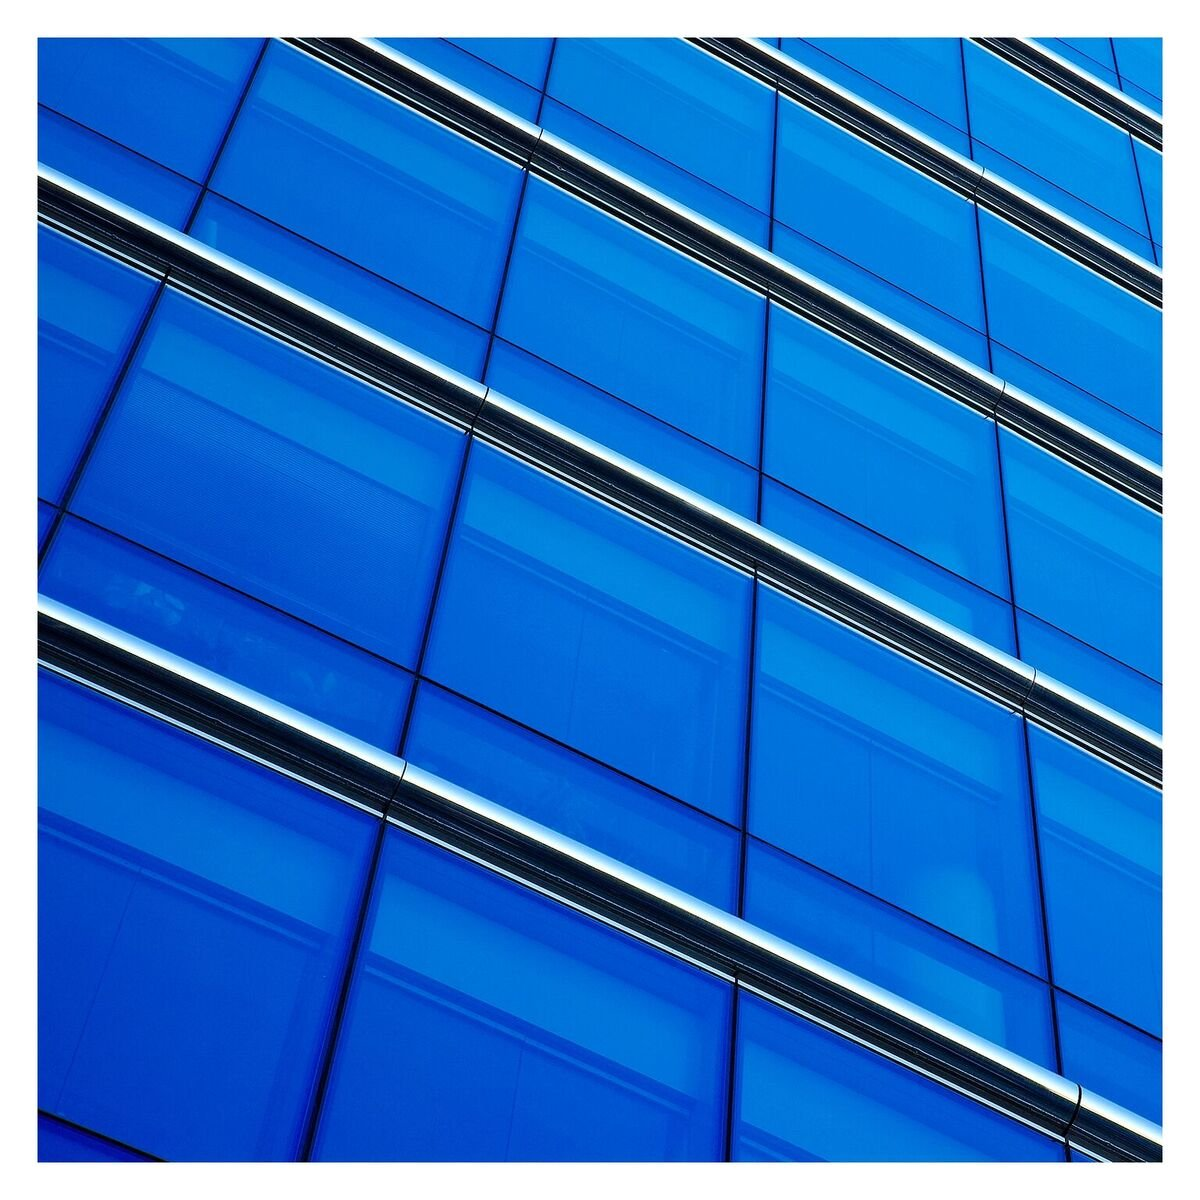 BDF CABL Window Film Transparent Color Blue (48'' X 12ft) by Buydecorativefilm